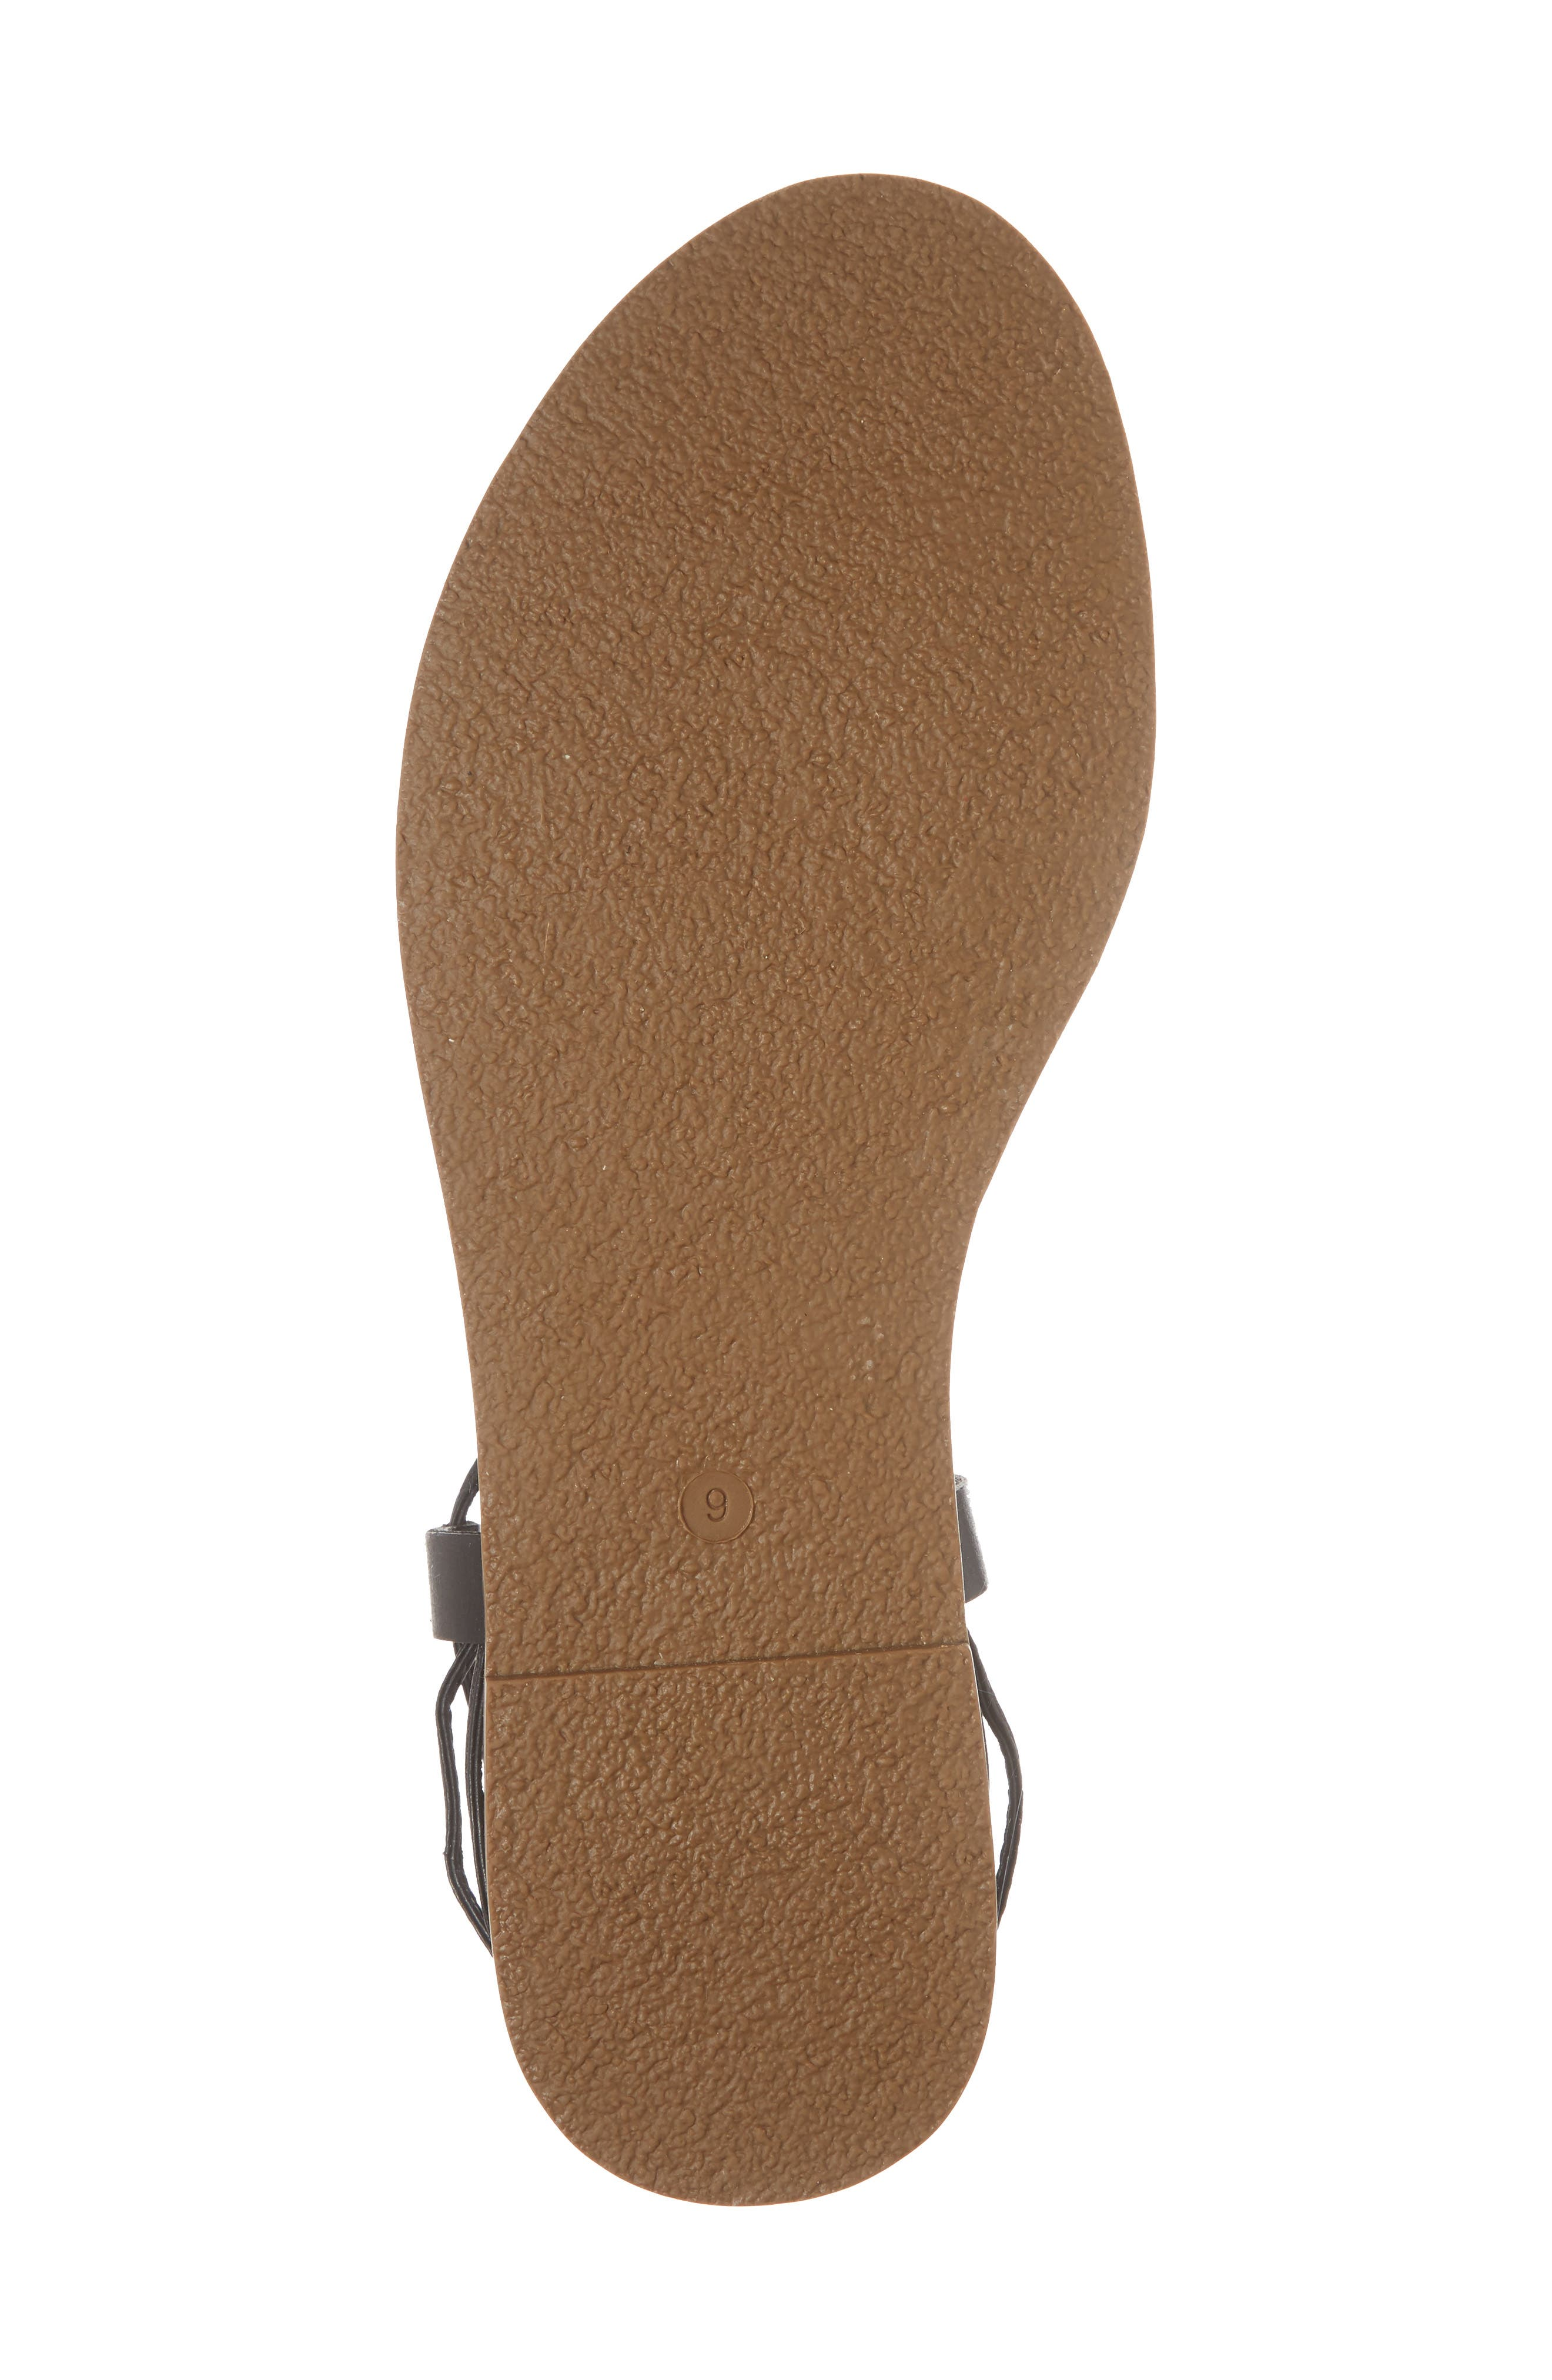 MADEWELL, The Boardwalk Lace-Up Sandal, Alternate thumbnail 6, color, 001